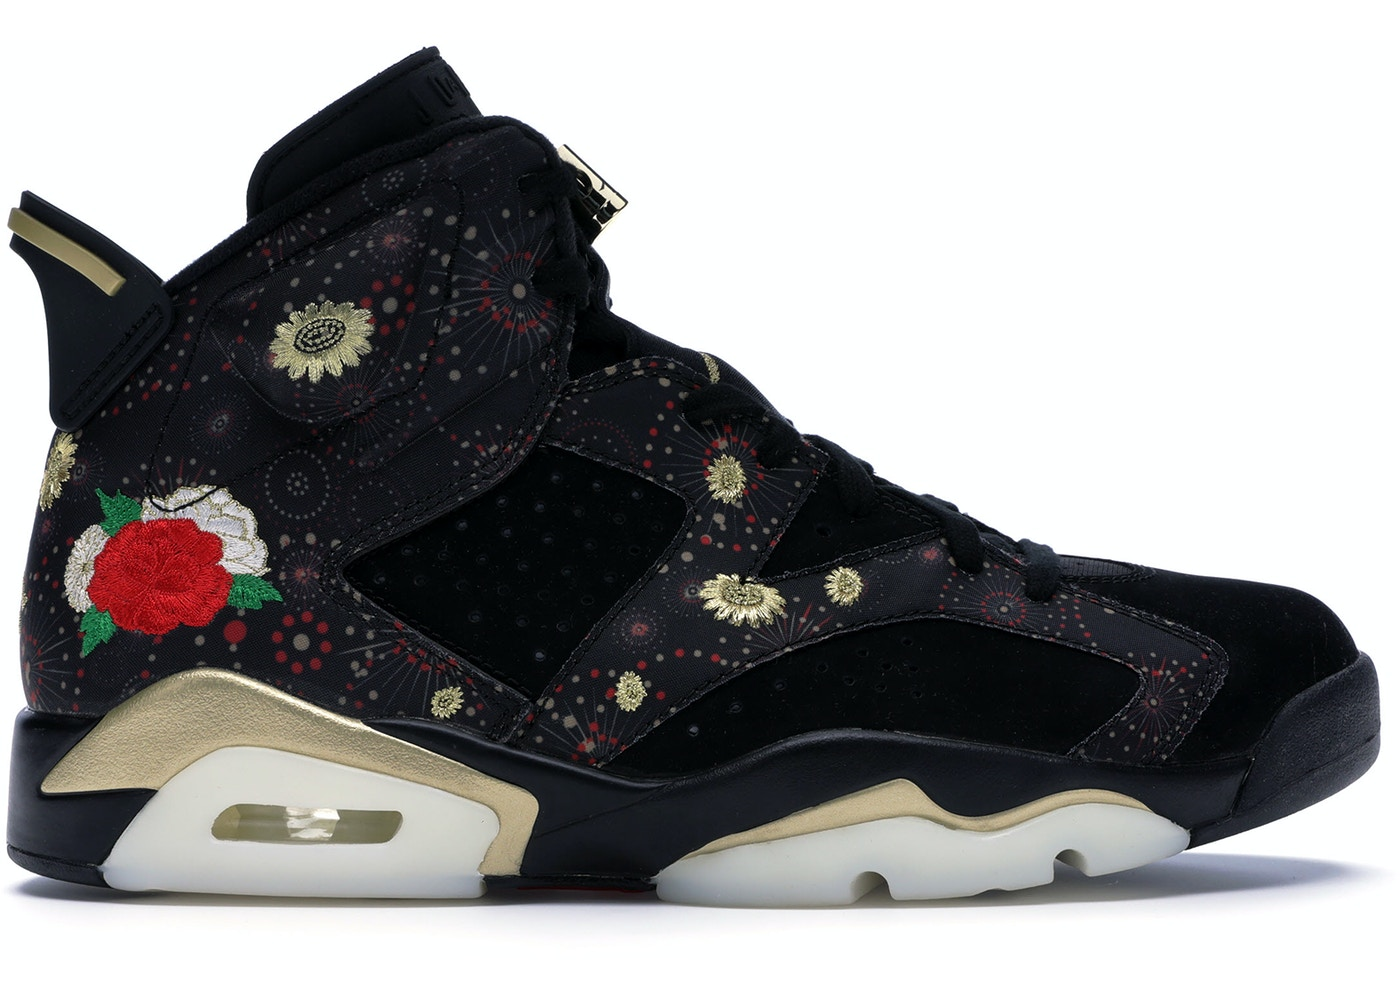 san francisco 0b3df e7556 Jordan 6 Retro Chinese New Year (2018)